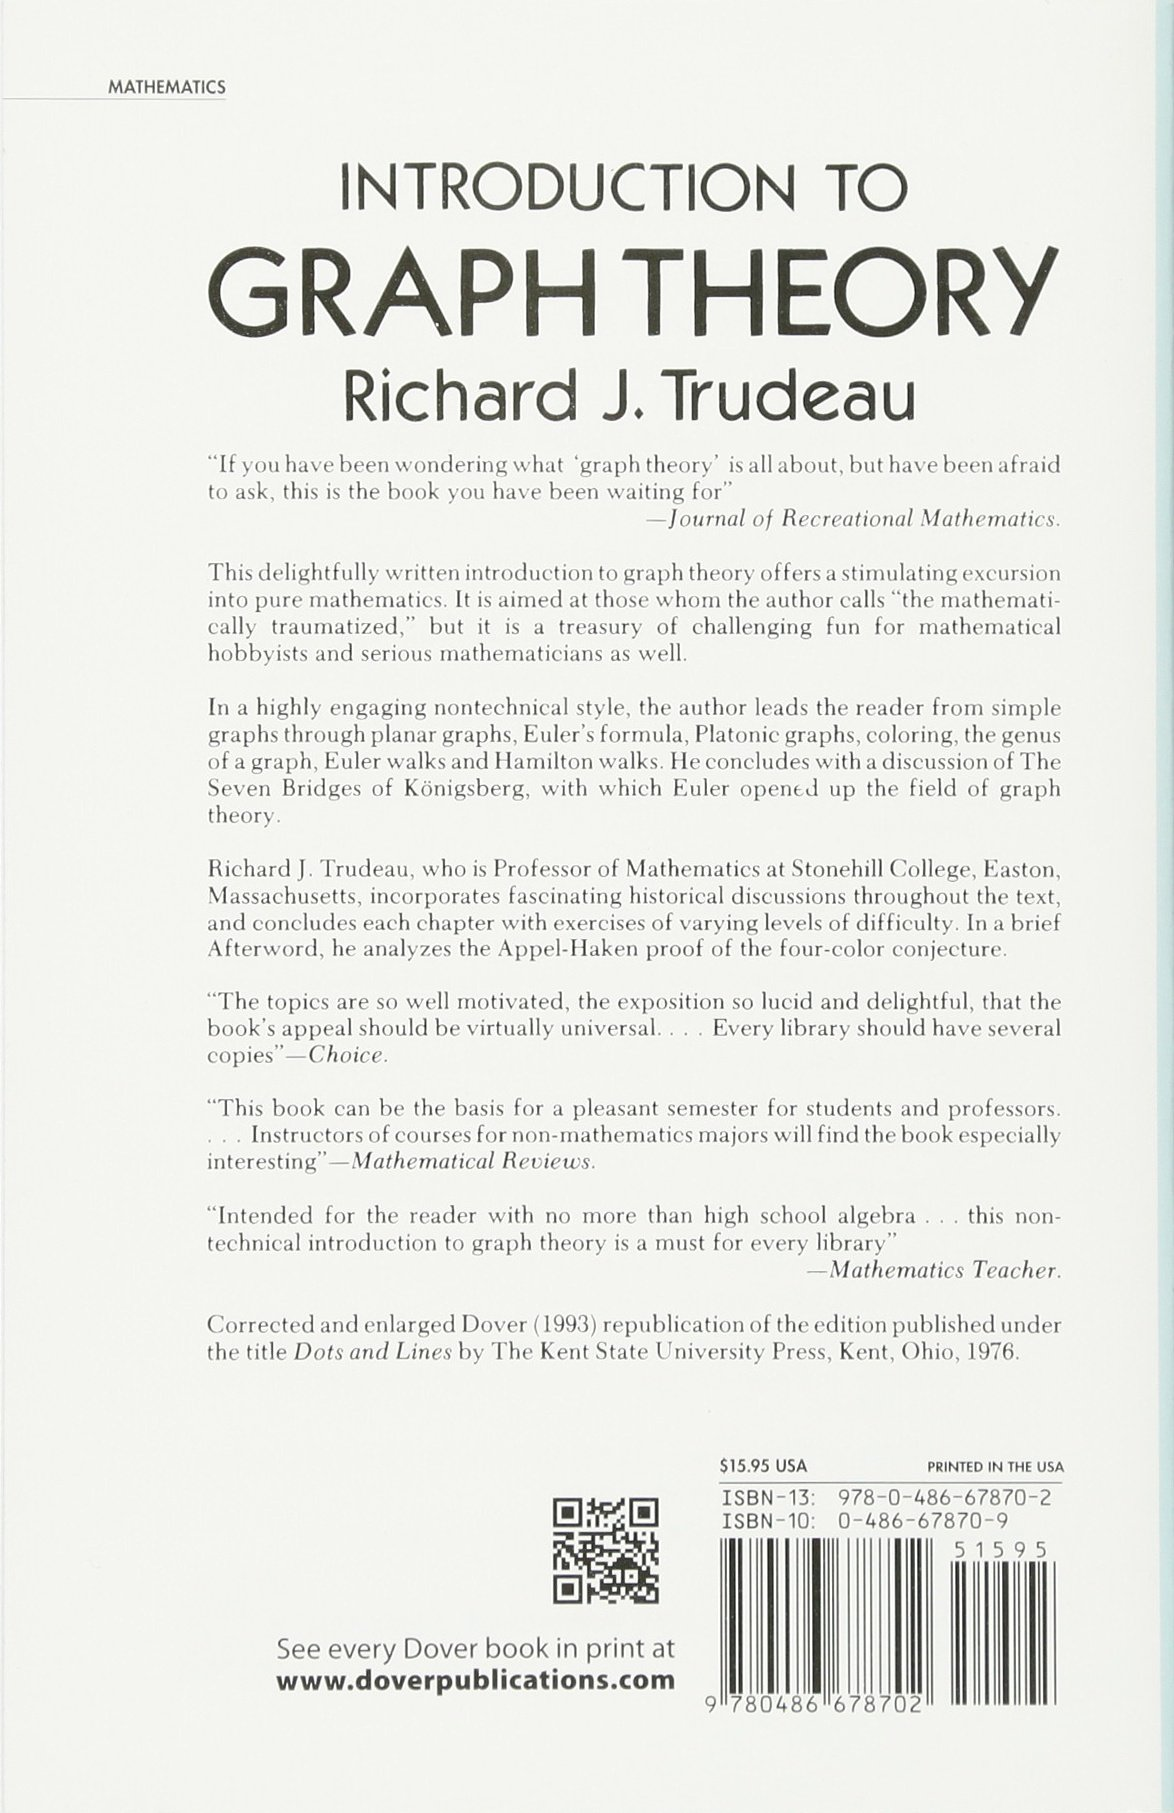 Introduction to graph theory dover books on mathematics amazon introduction to graph theory dover books on mathematics amazon richard j trudeau 0800759678709 books baditri Gallery